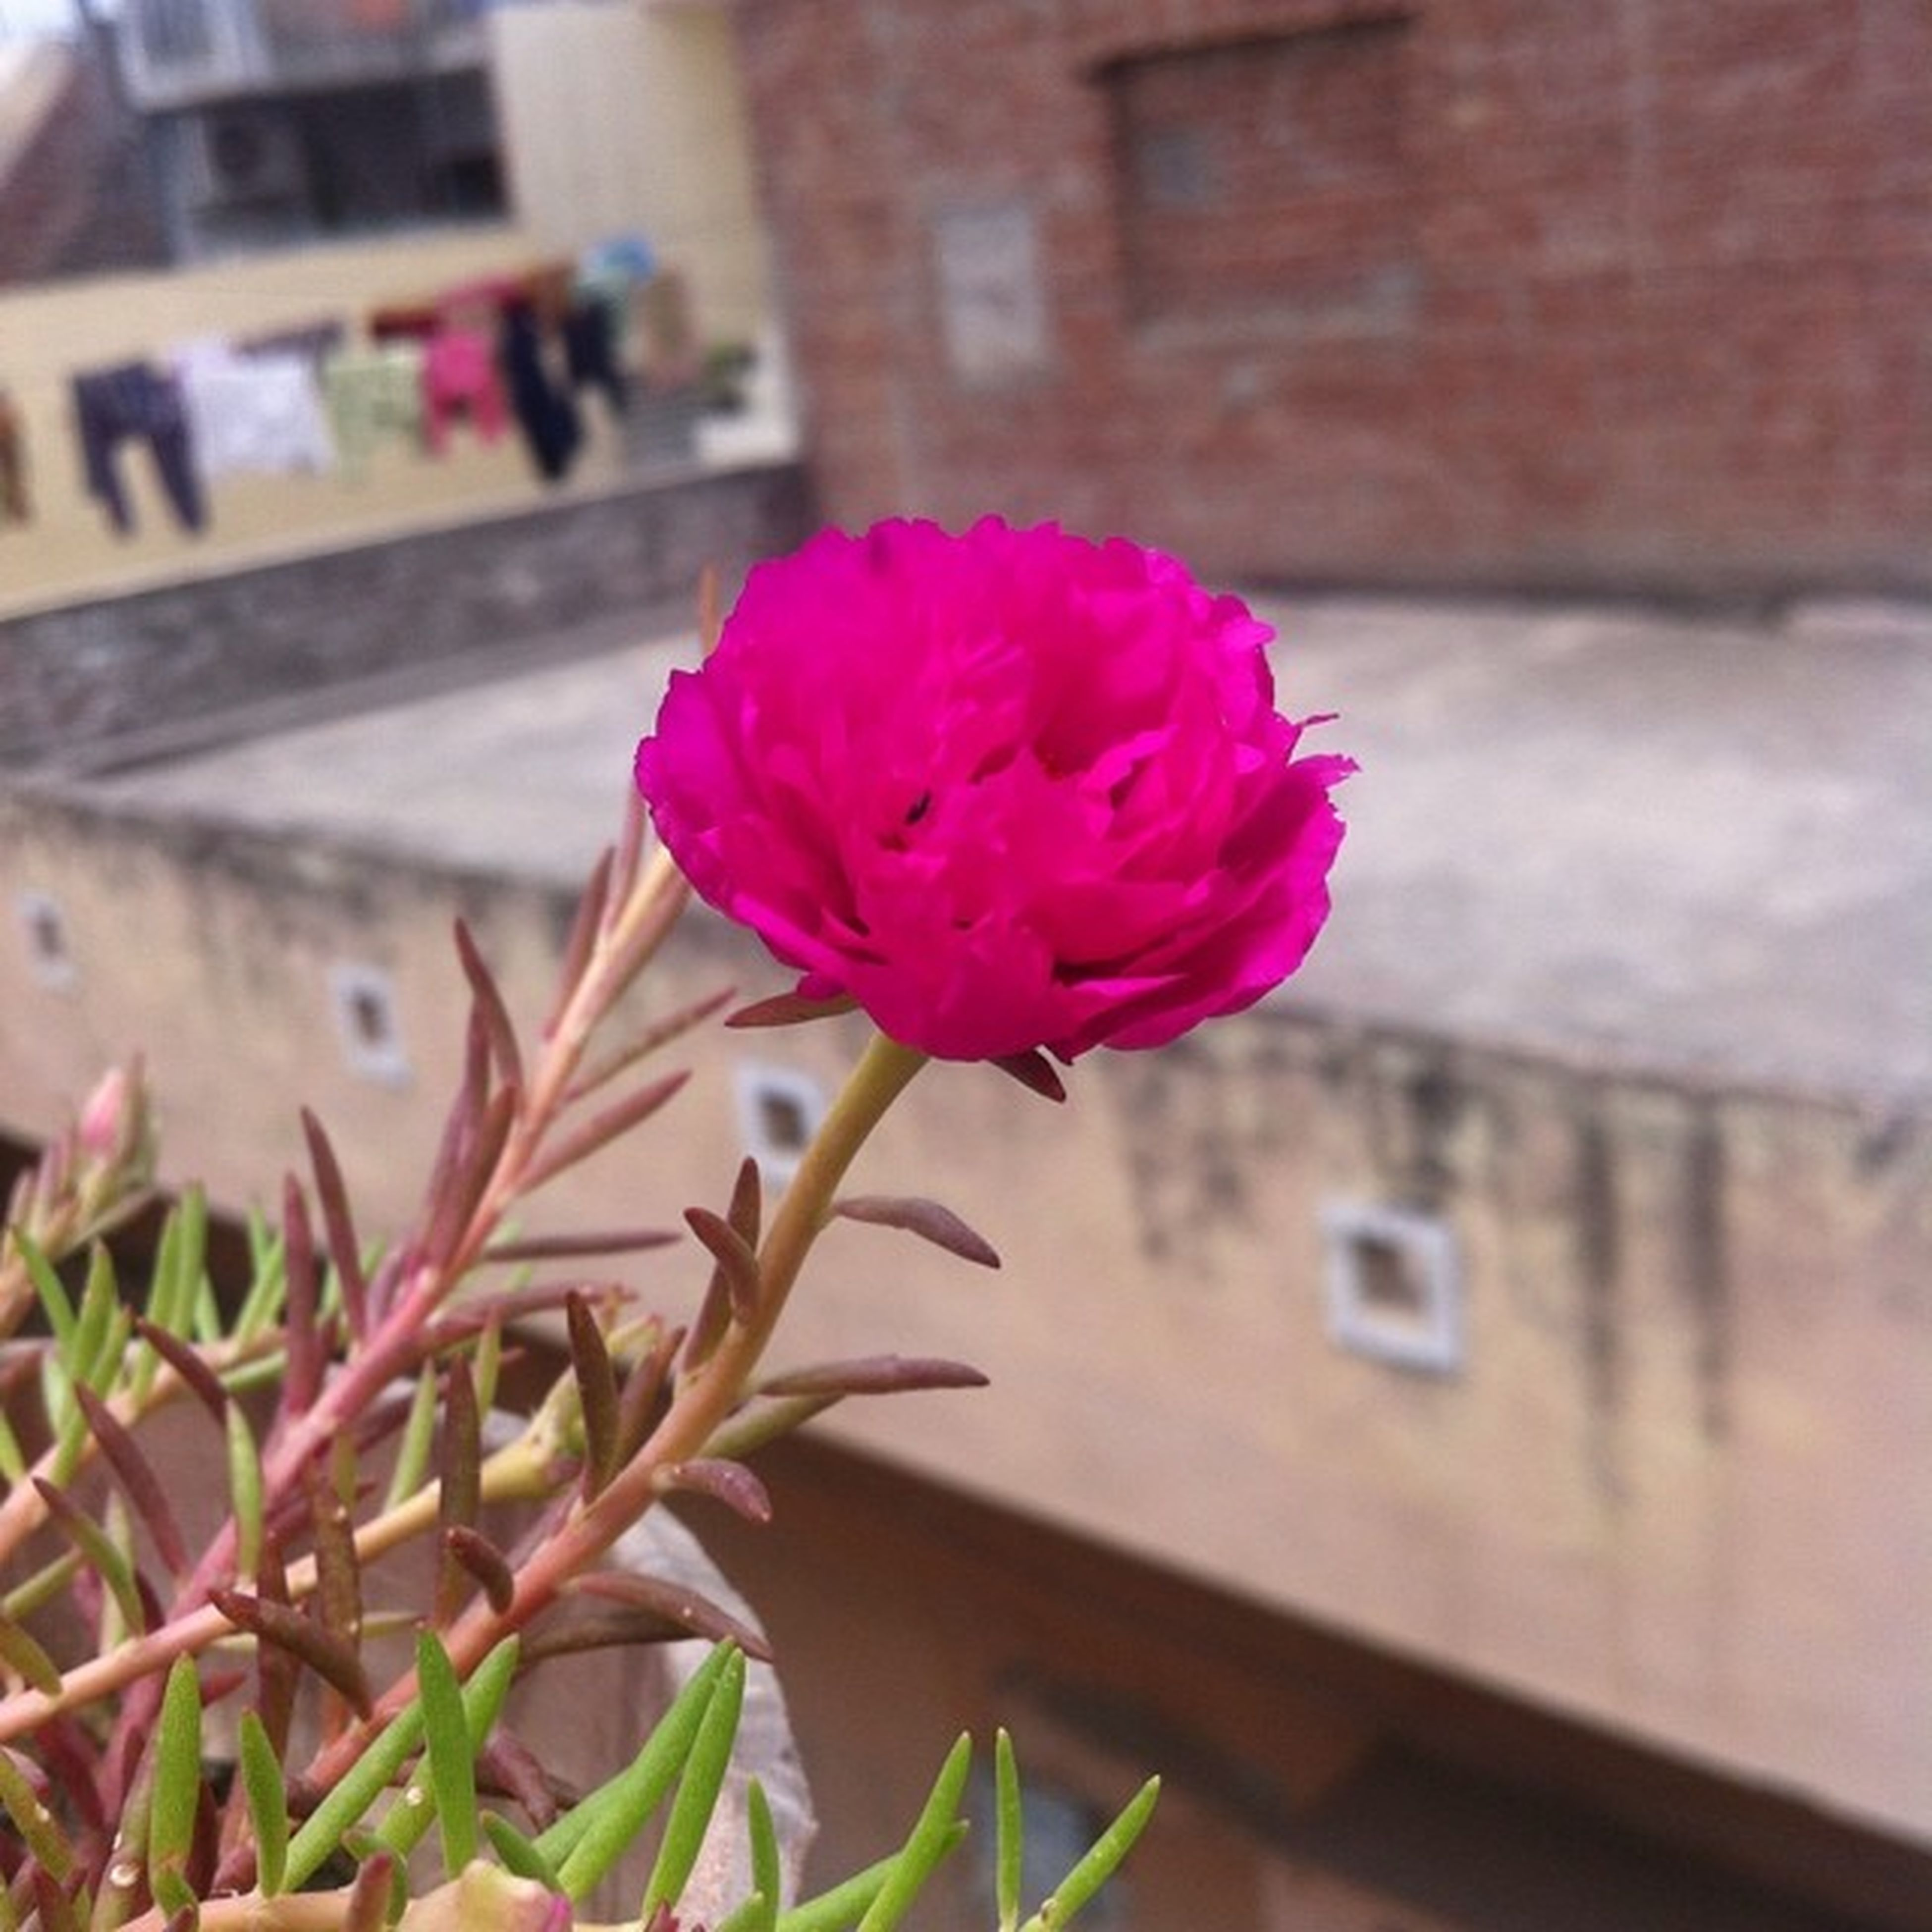 flower, petal, freshness, fragility, flower head, pink color, focus on foreground, close-up, growth, beauty in nature, blooming, single flower, stem, nature, leaf, plant, rose - flower, built structure, building exterior, pink